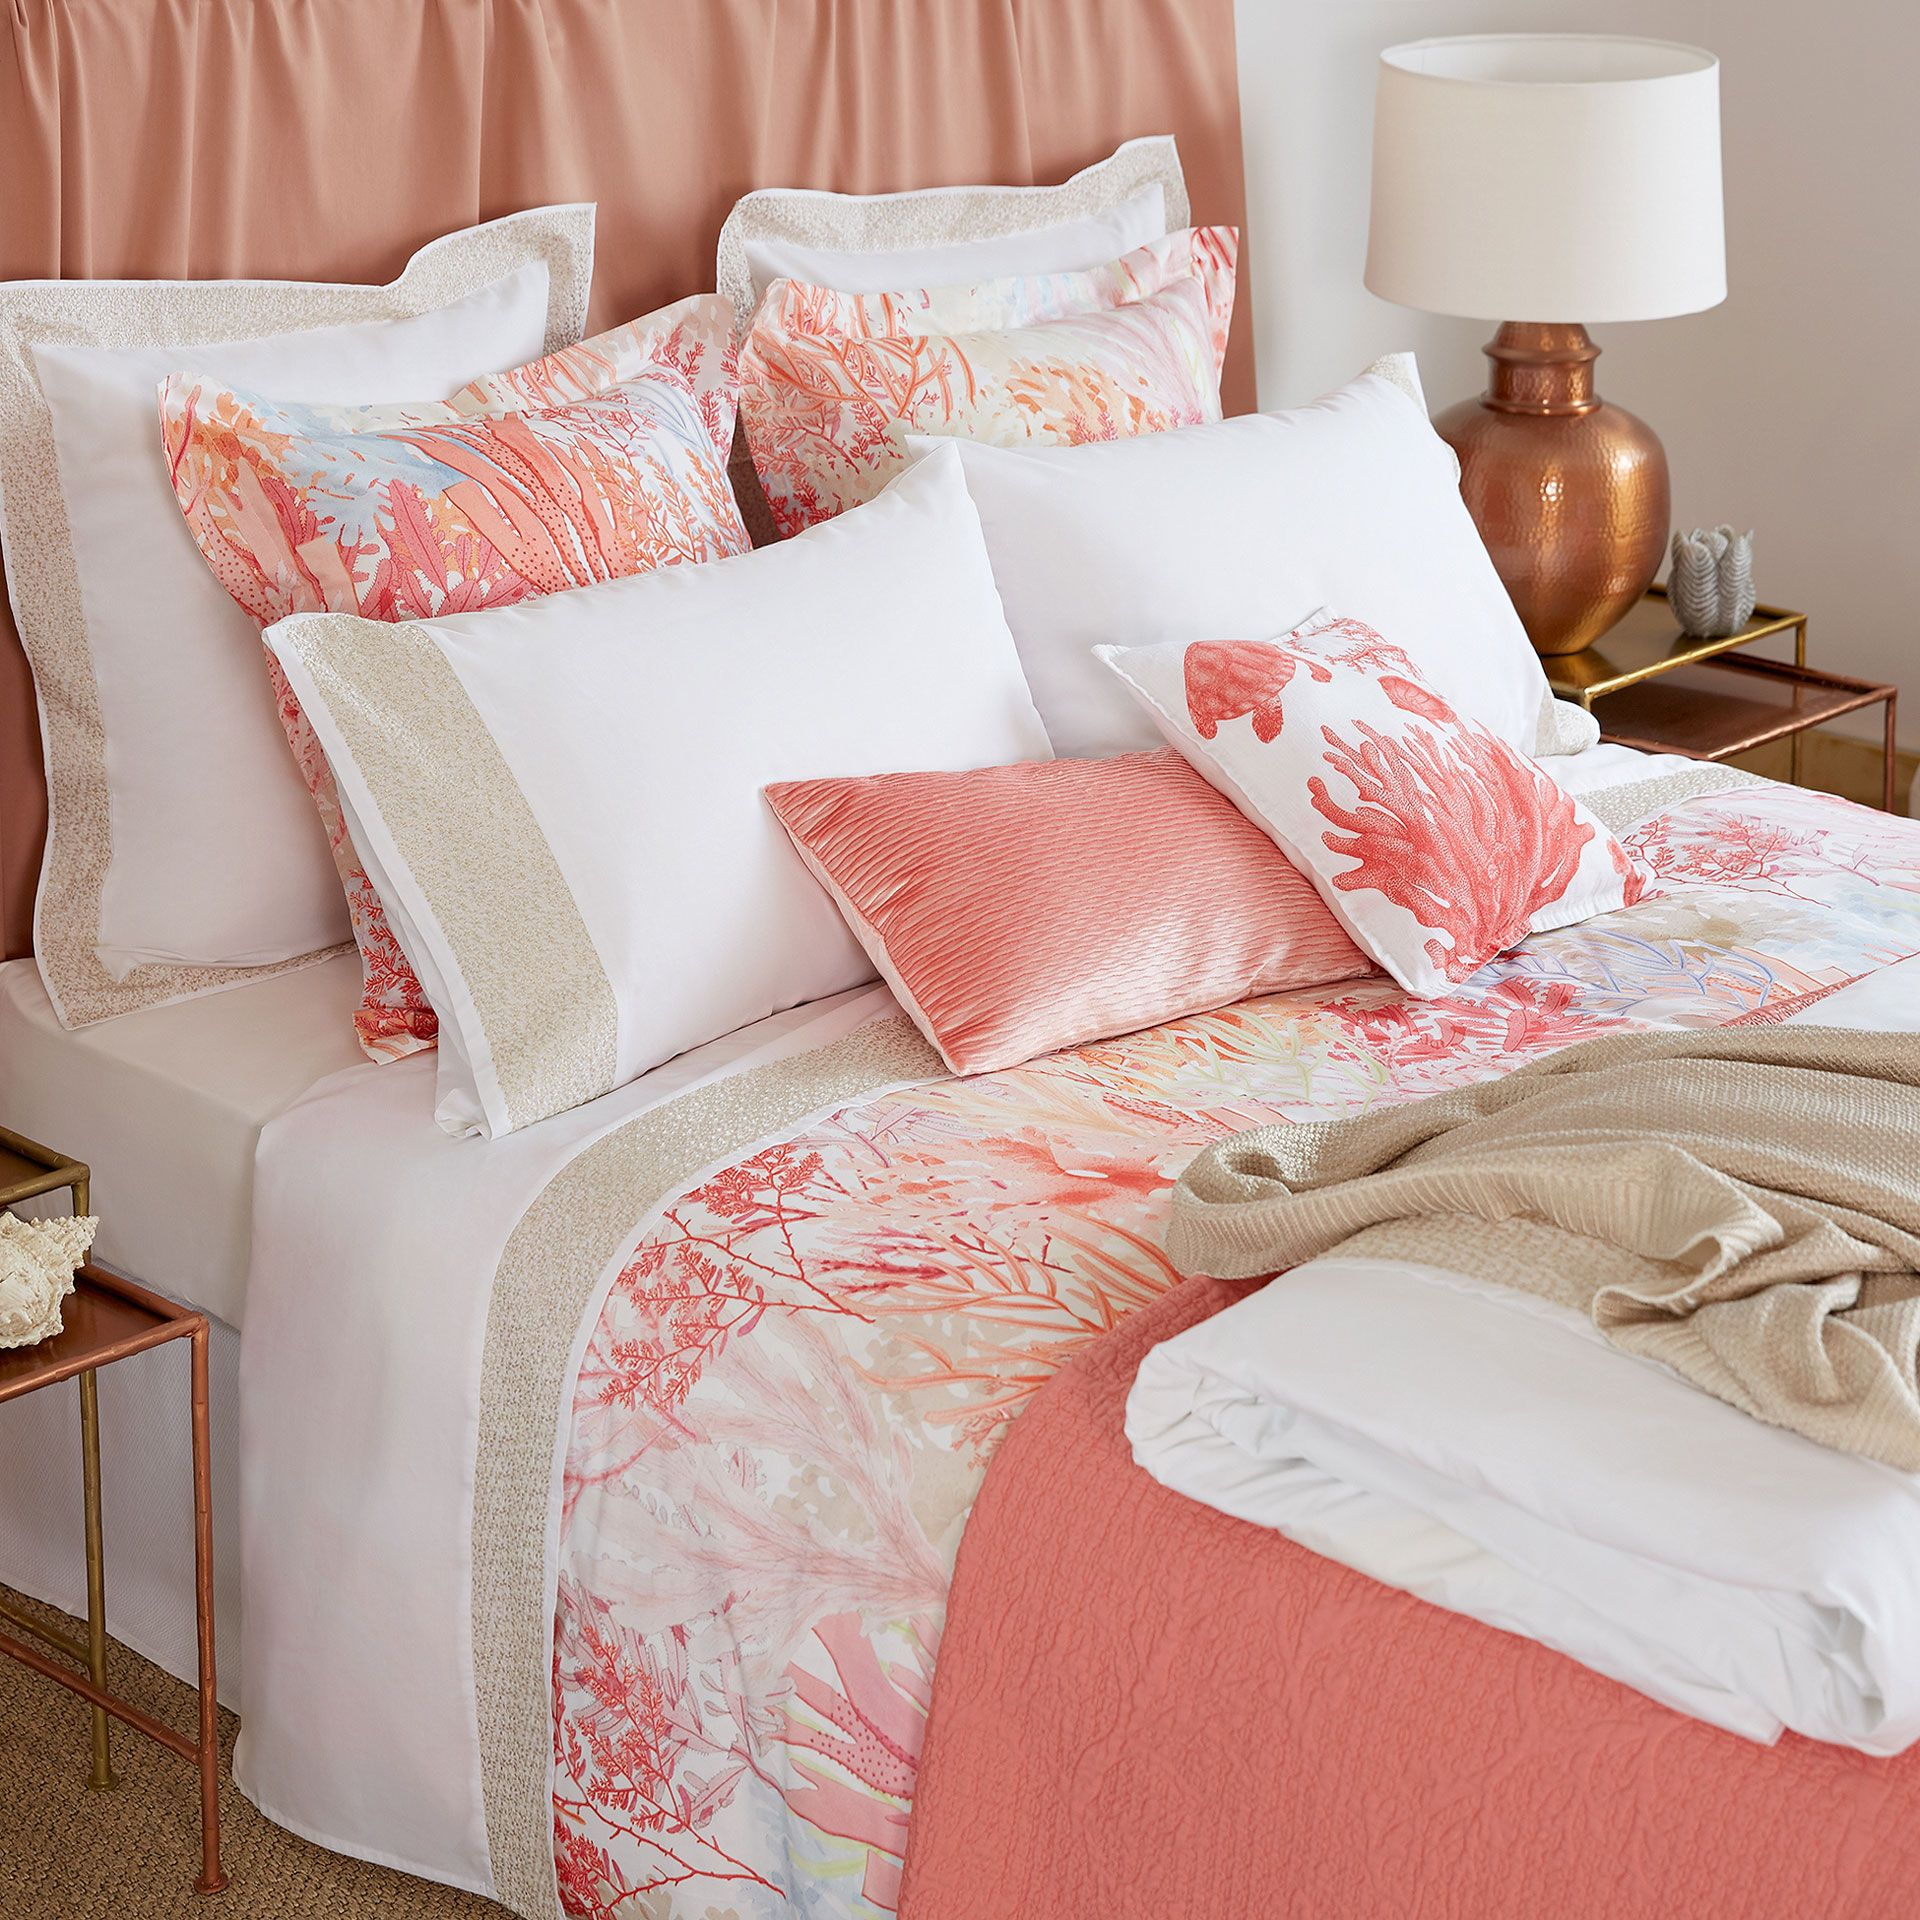 Bettwäsche Satin Zara Home Image 2 Of The Product Multicoloured Coral Digital Print Bed Linen